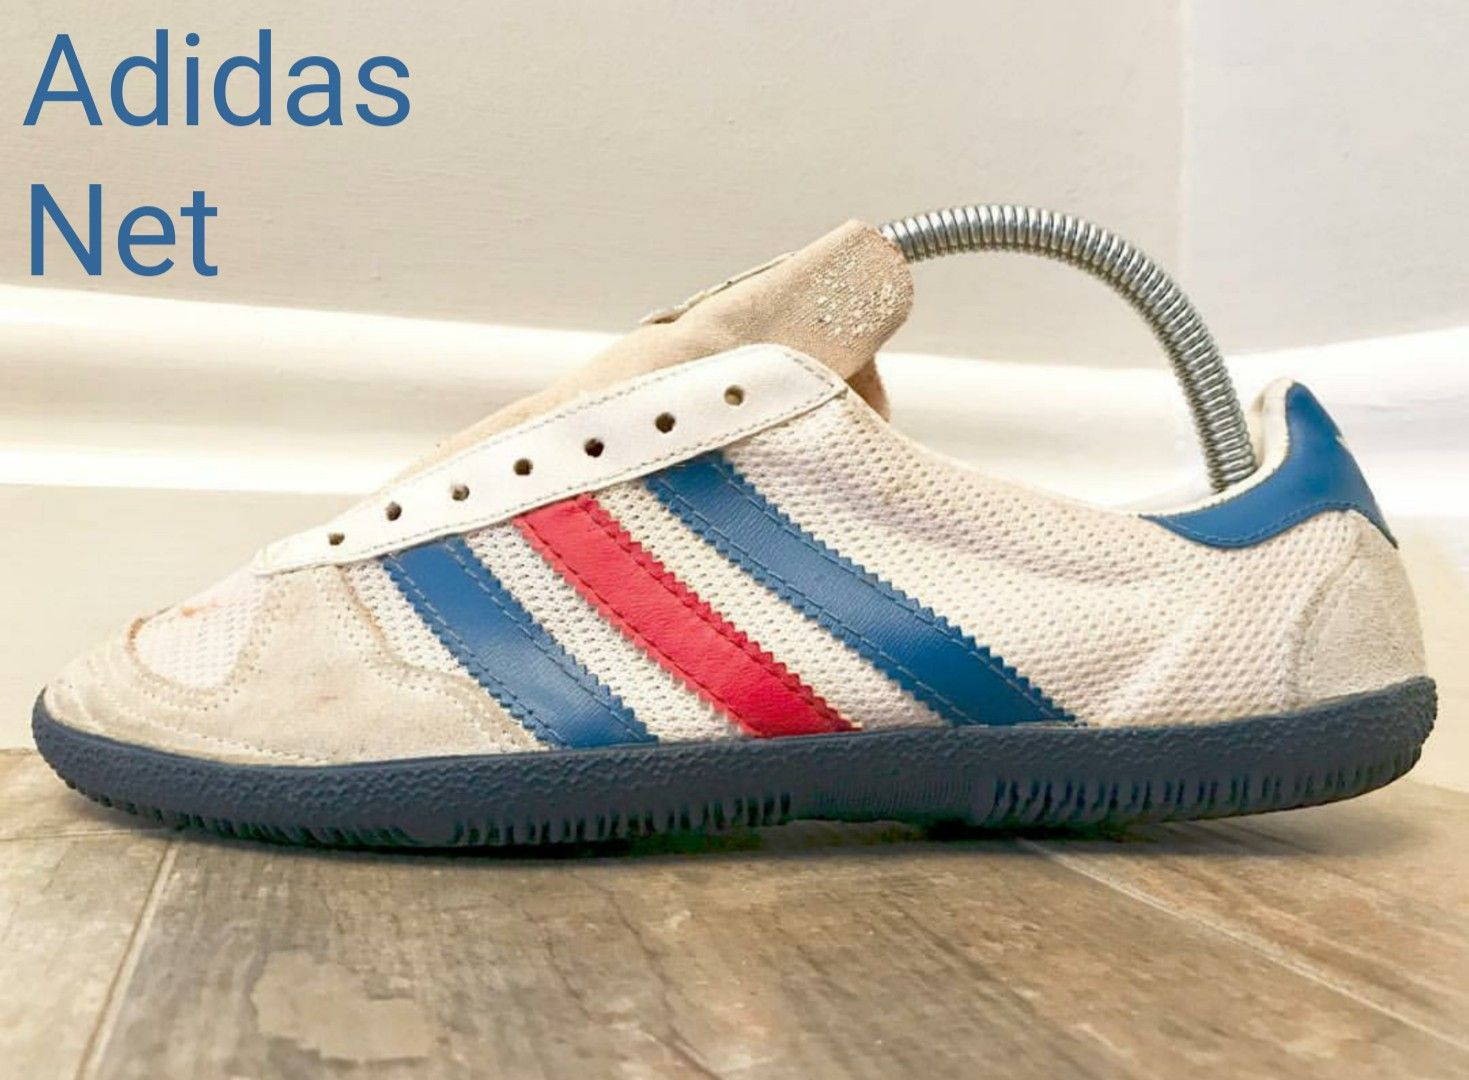 Escuela primaria Paisaje piso  Vintage French made Adidas Net from 1980 - not usually into mesh trainers,  but these vintage bad boys are … | Vintage adidas, Adidas fashion, Adidas  shoes originals